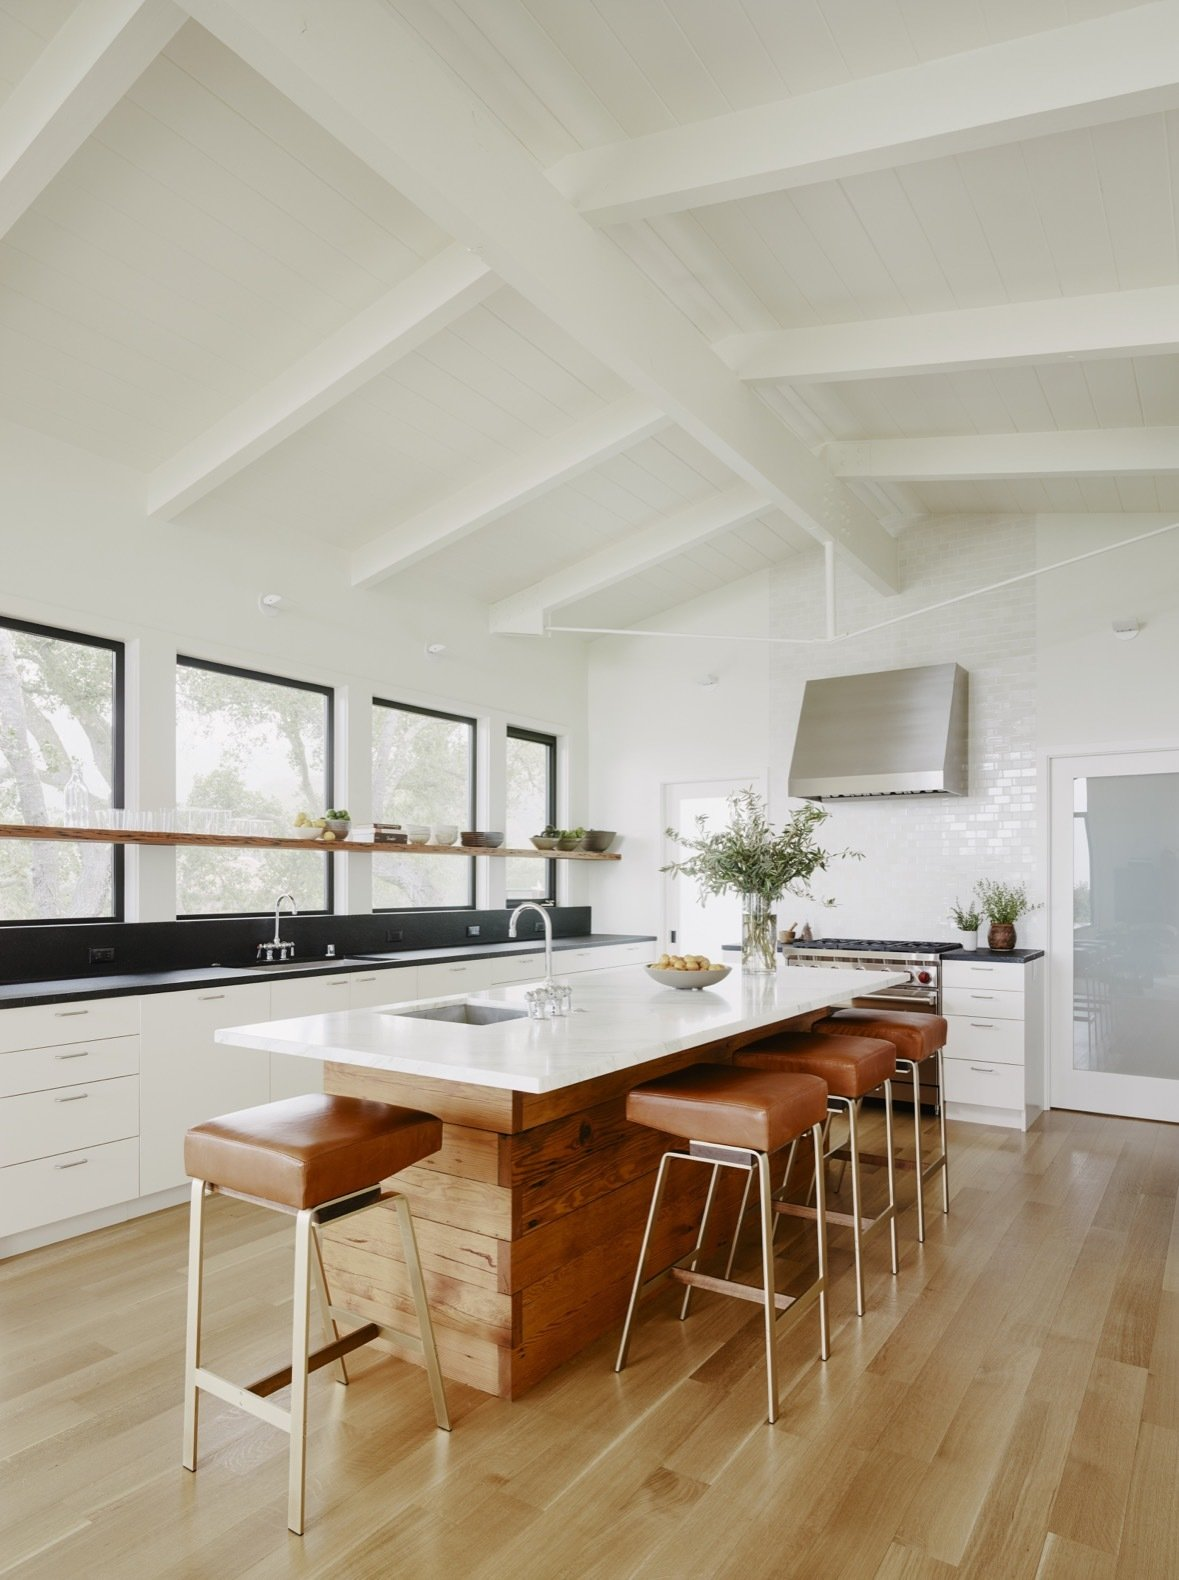 Portola Valley House kitchen